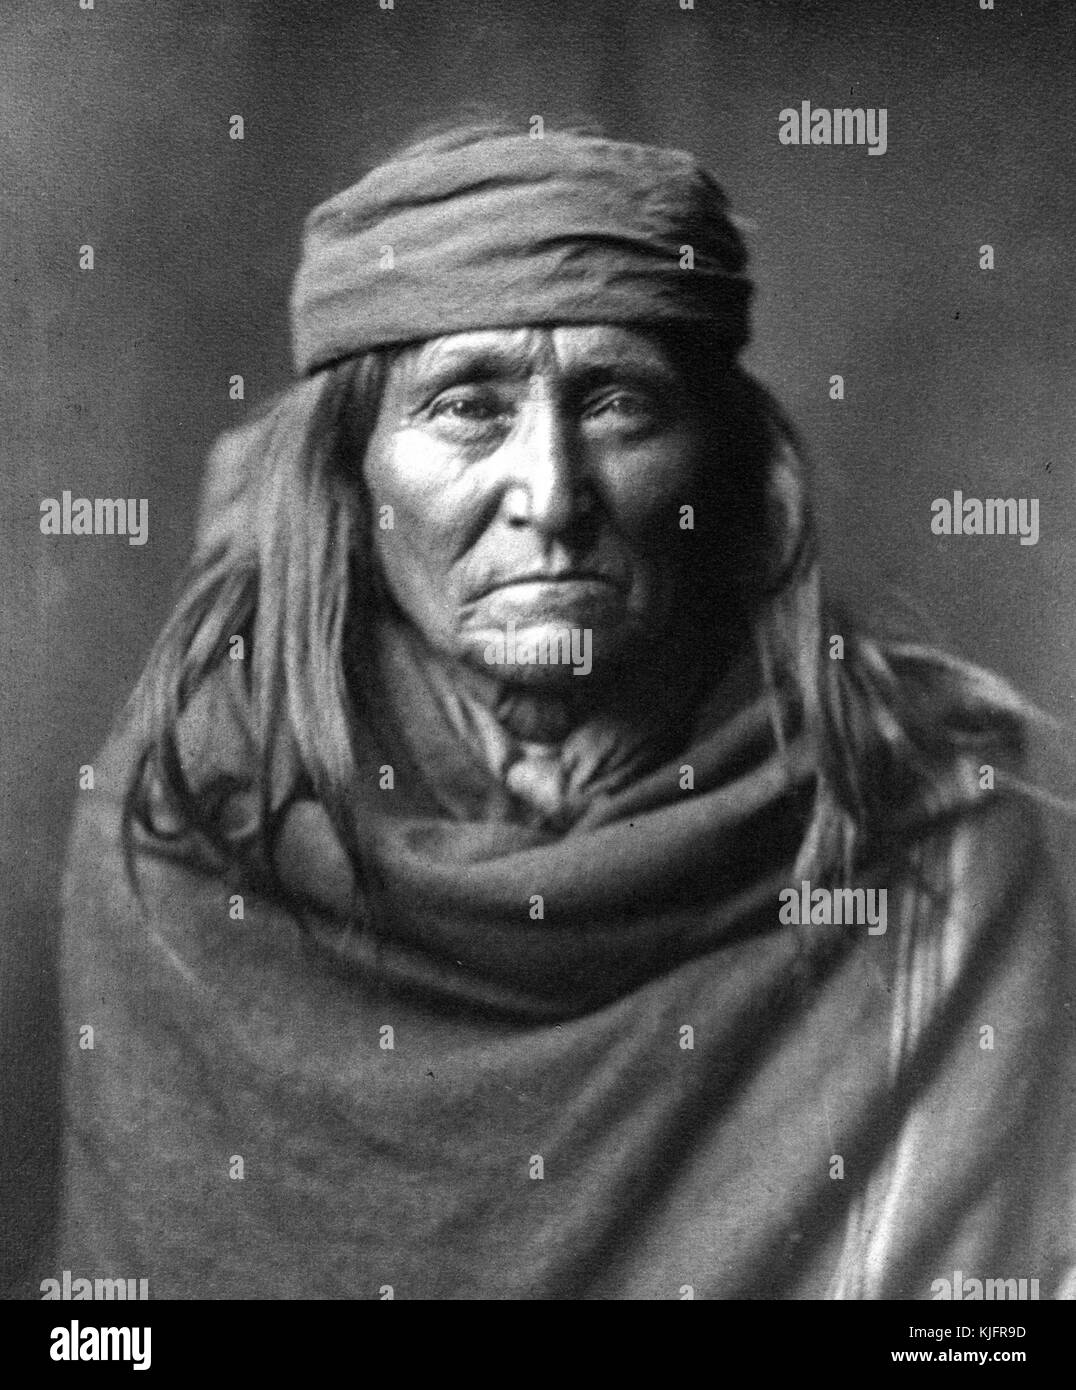 Portrait Of A Mature Native American Man With Long Hair A Head Band